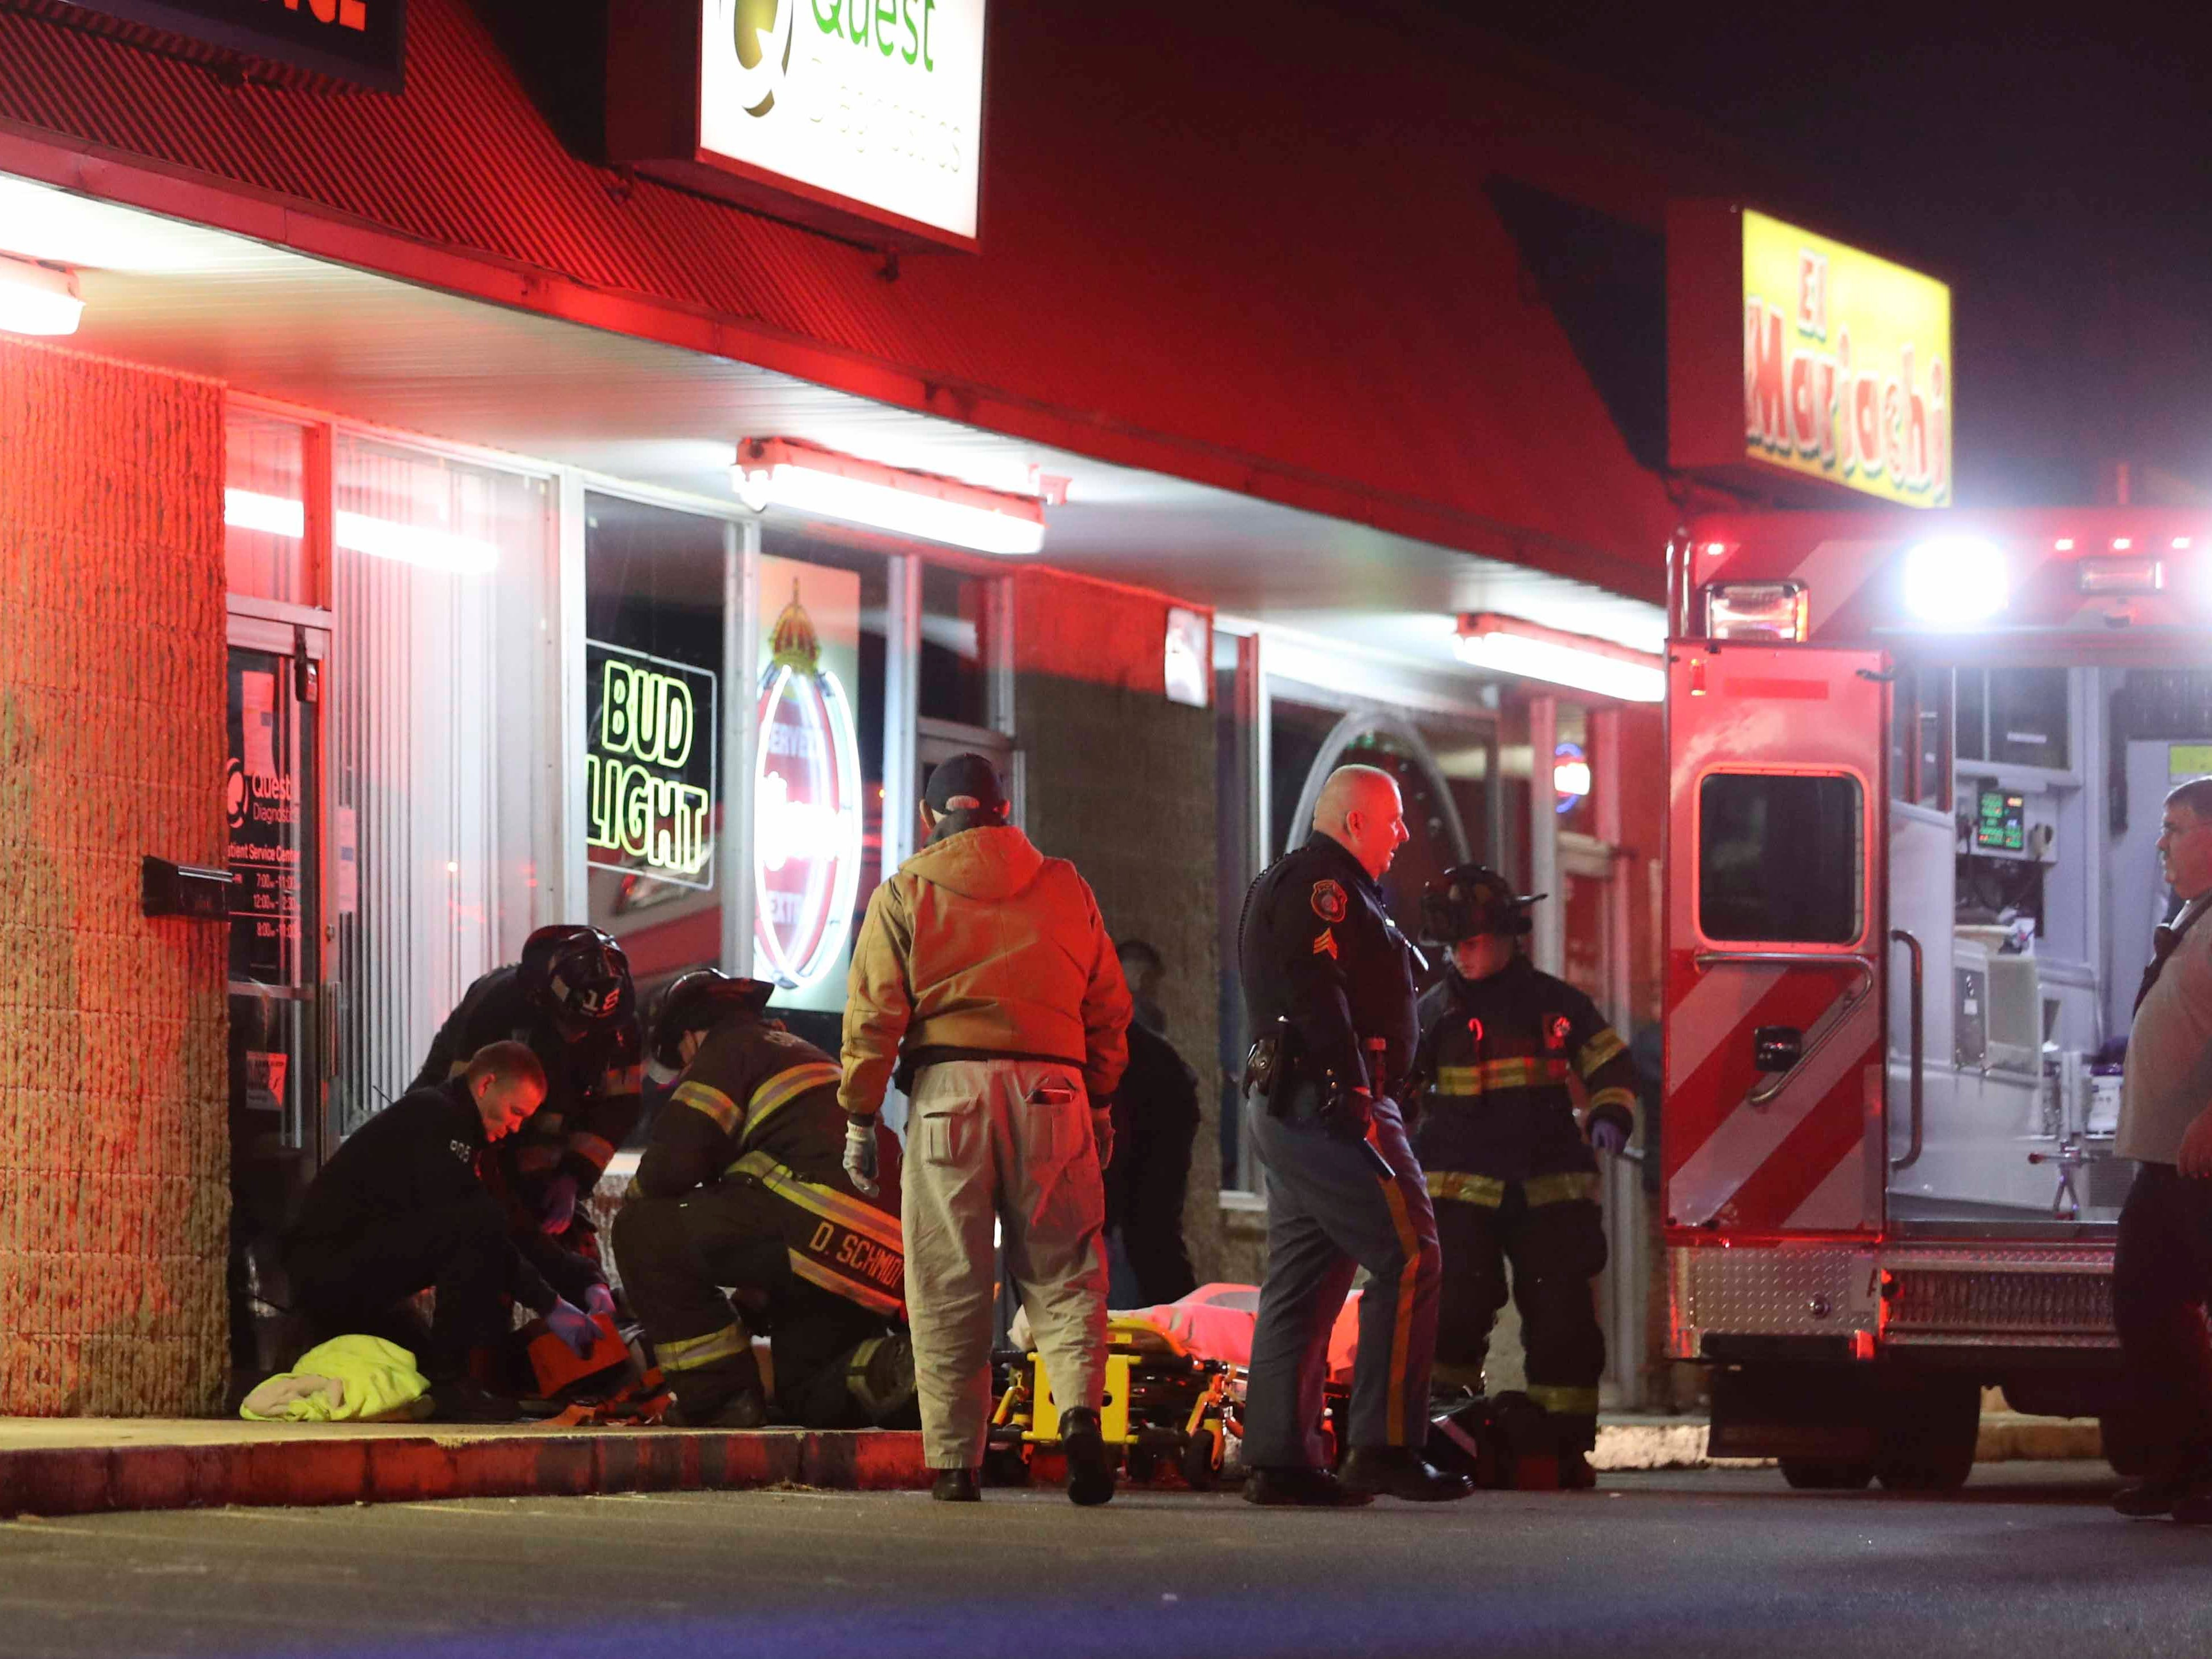 Emergency personnel tend to woman struck and pinned against a storefront wall outside Casa Mariachi restaurant and bar on East Basin Road about 11:10 p.m. Friday.